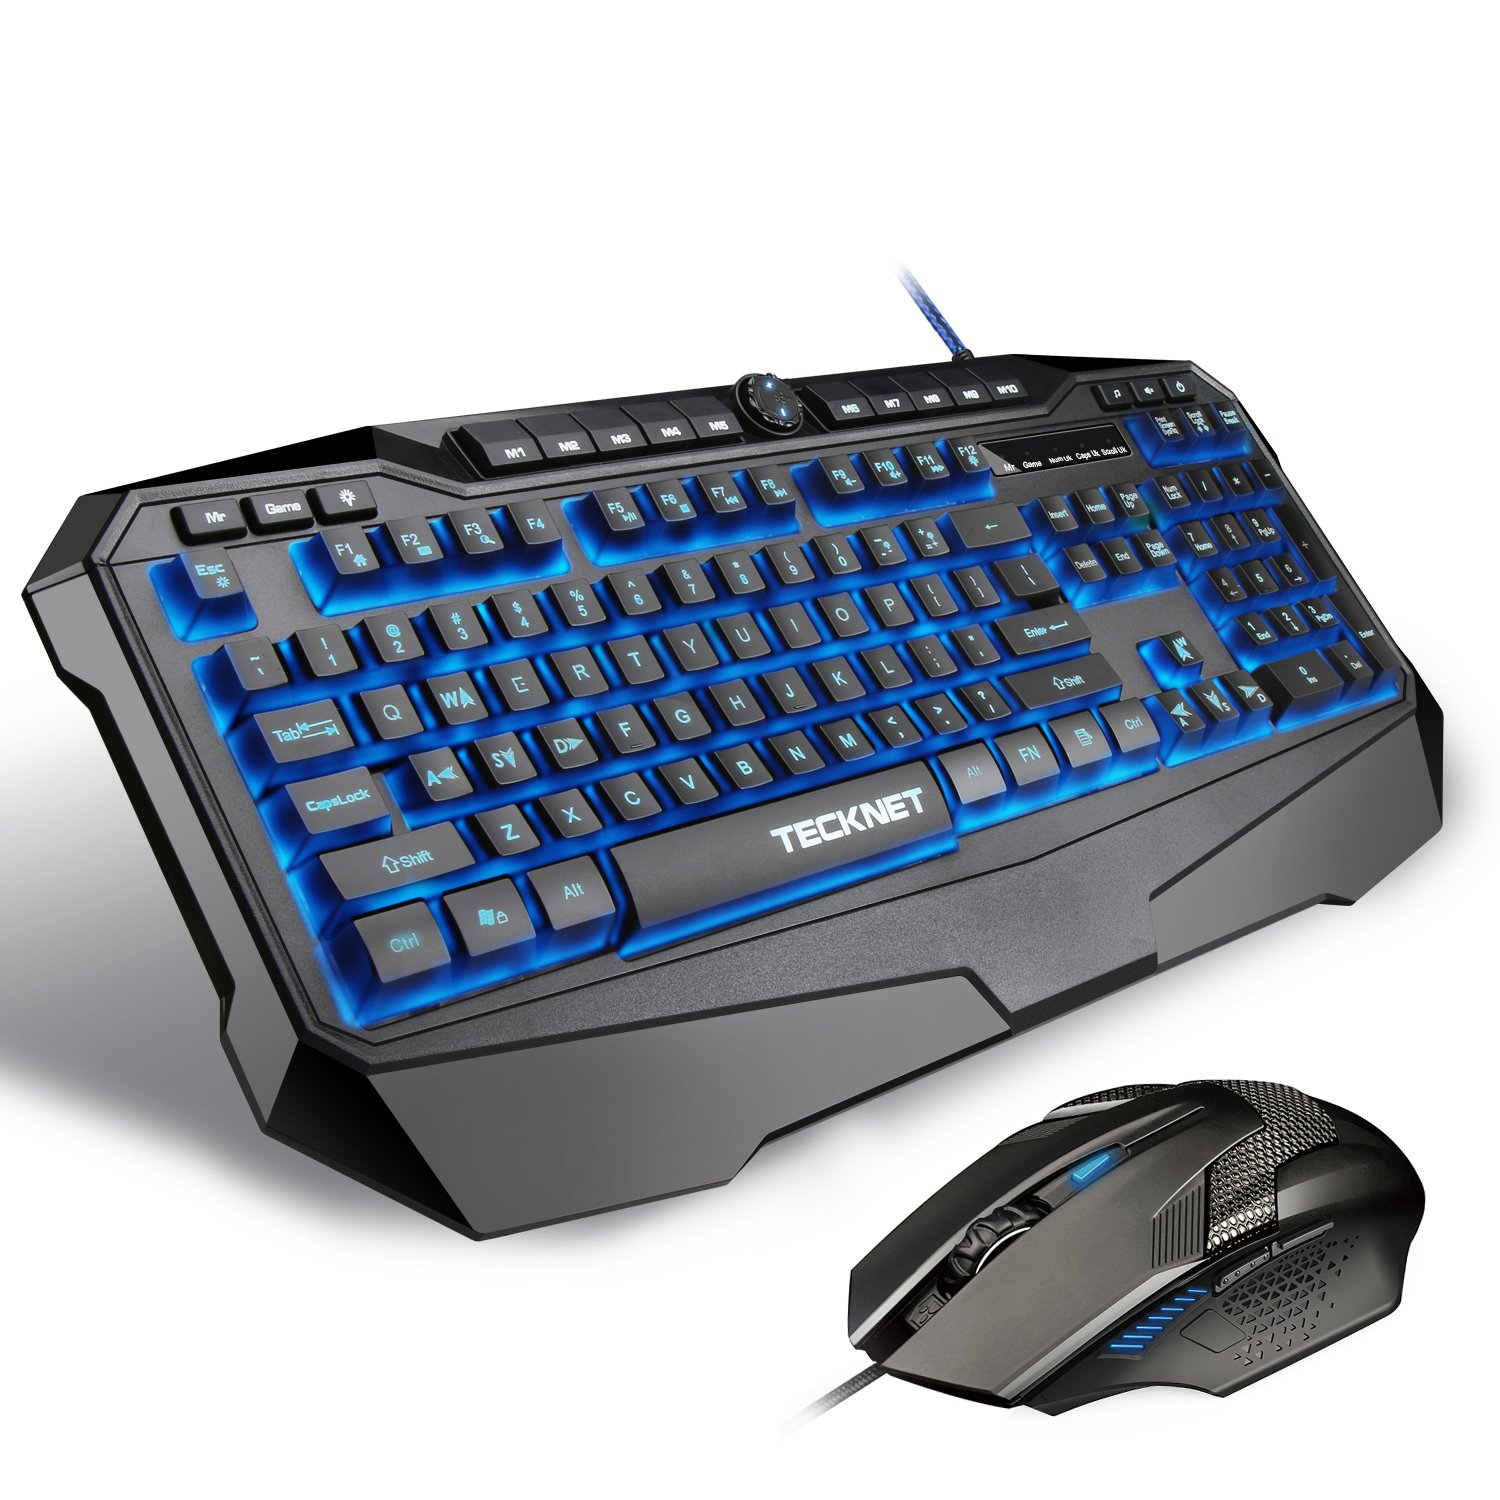 TeckNet Gaming Keyboard and Mouse Gryphon Pro LED Backlit Illuminated  Programmable Mecha-Membrane Wired Gaming Mouse and Keyboard Set,  Spill-Resistant